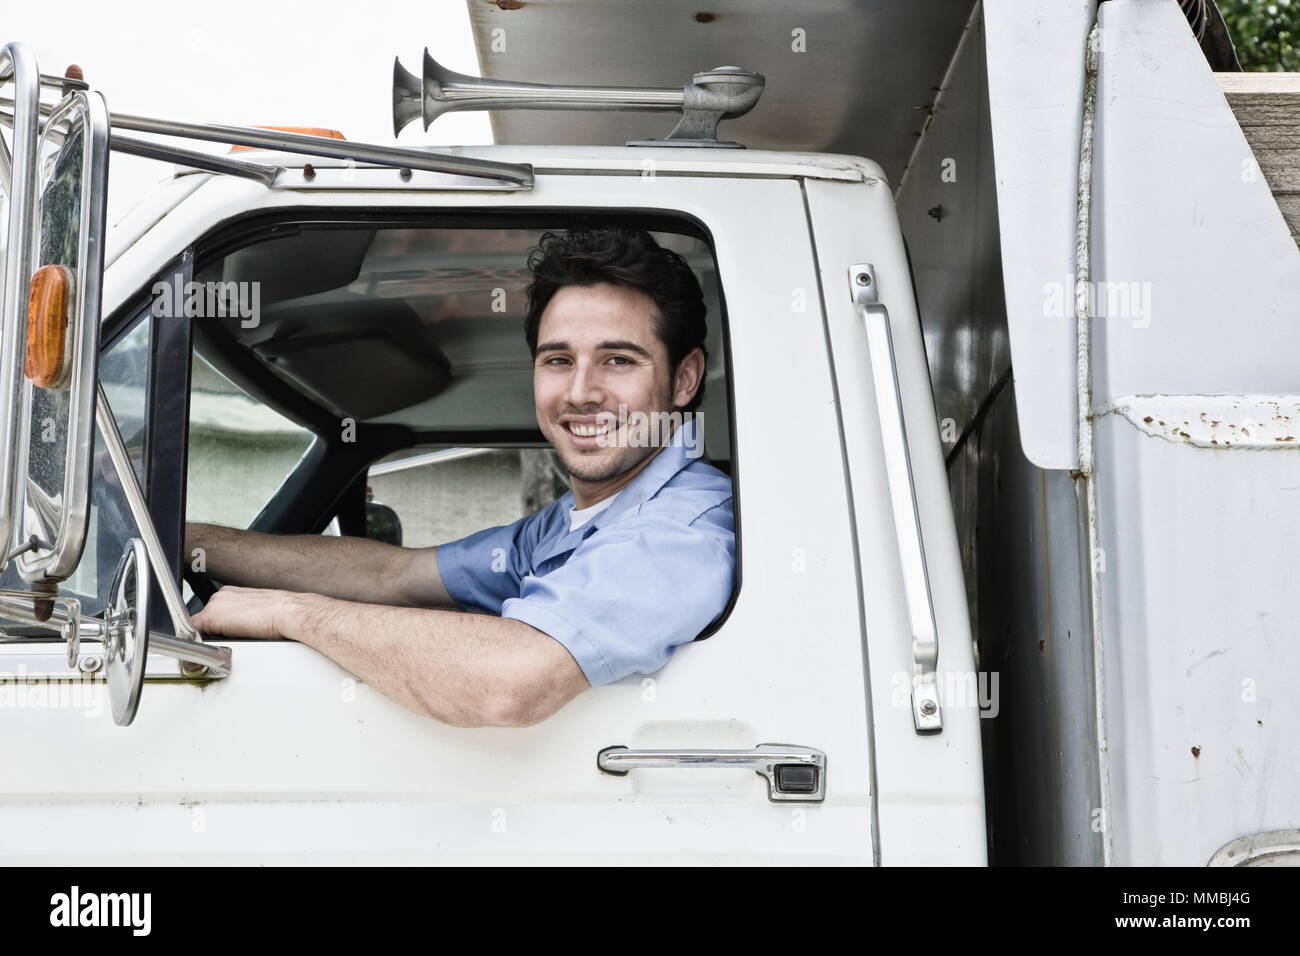 Caucasian man truck driver in company truck window. - Stock Image